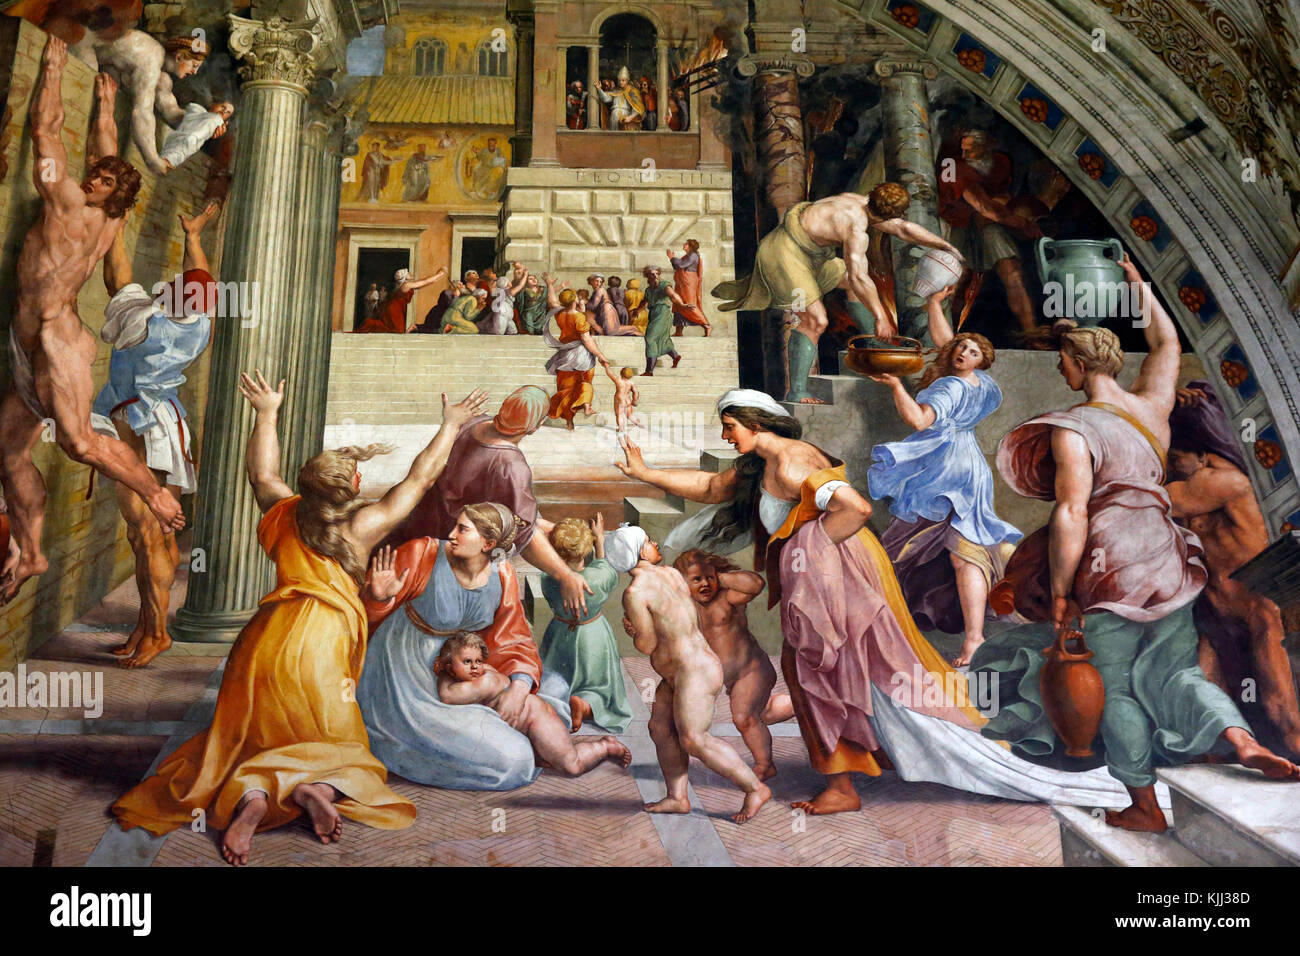 Vatican museums, Rome. Raphael's rooms. Fire in the Borgo. Italy. - Stock Image